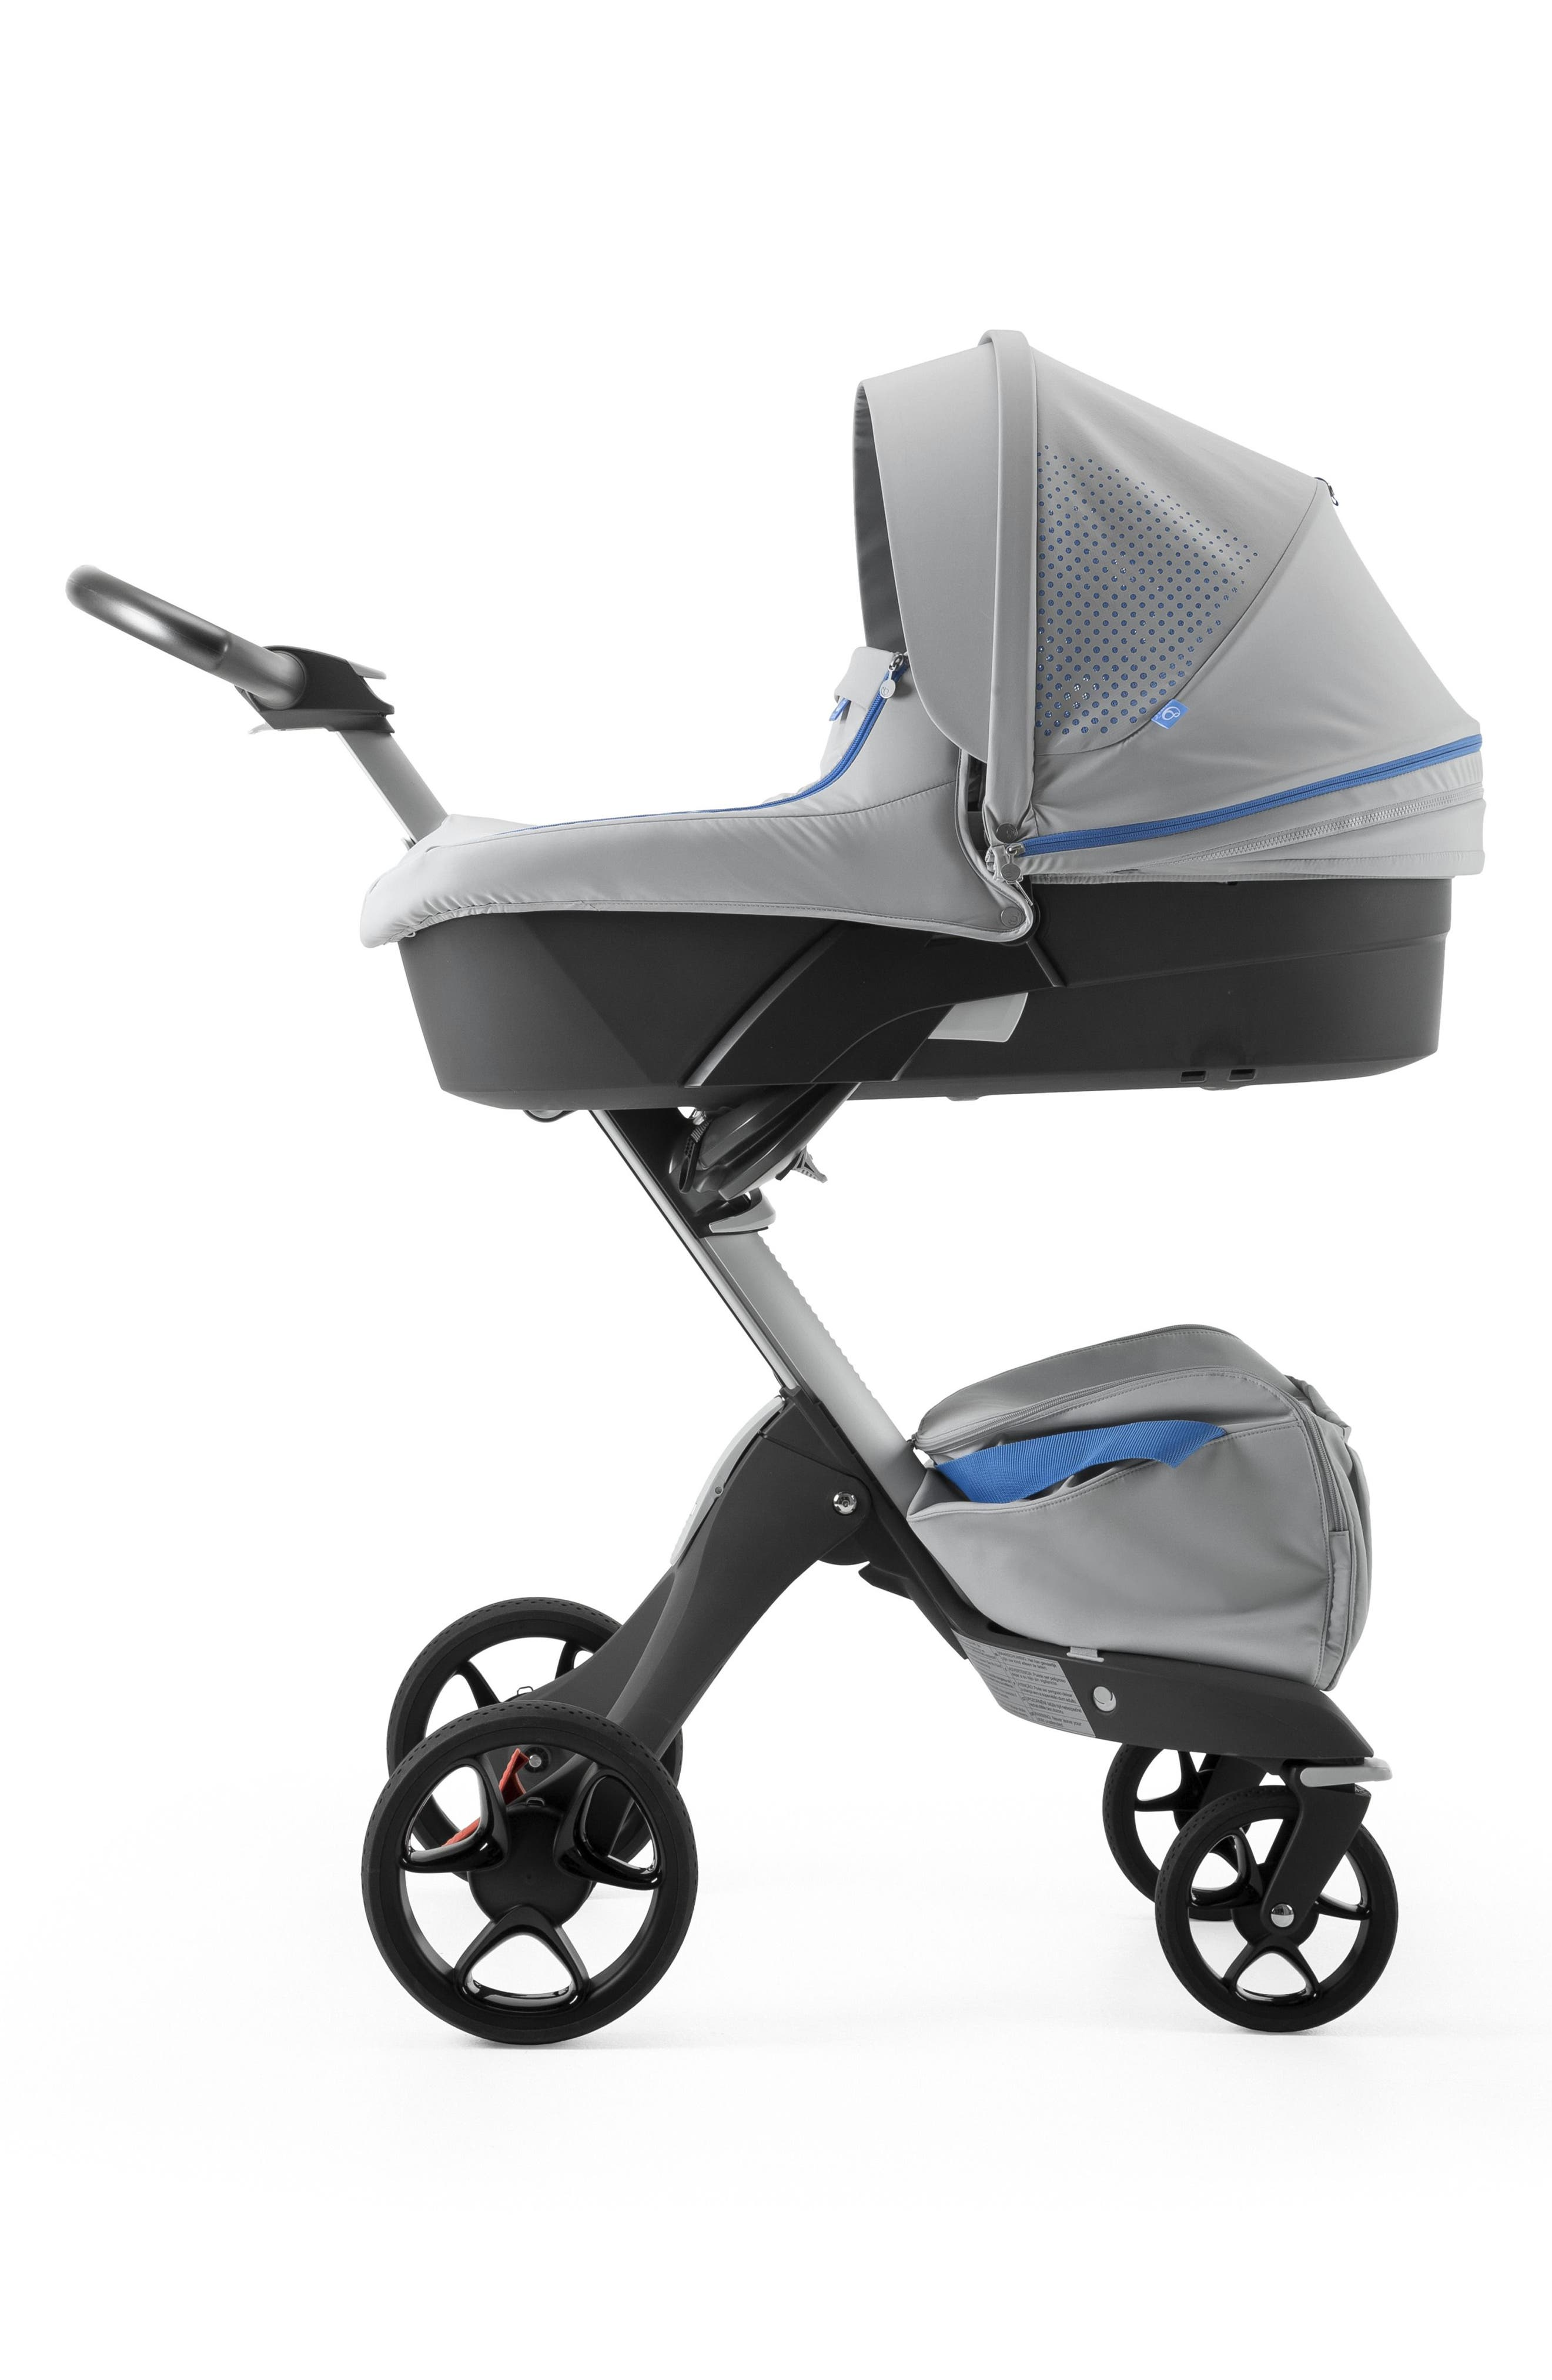 Main Image - Stokke Xplory® Athleisure Stroller Carry Cot